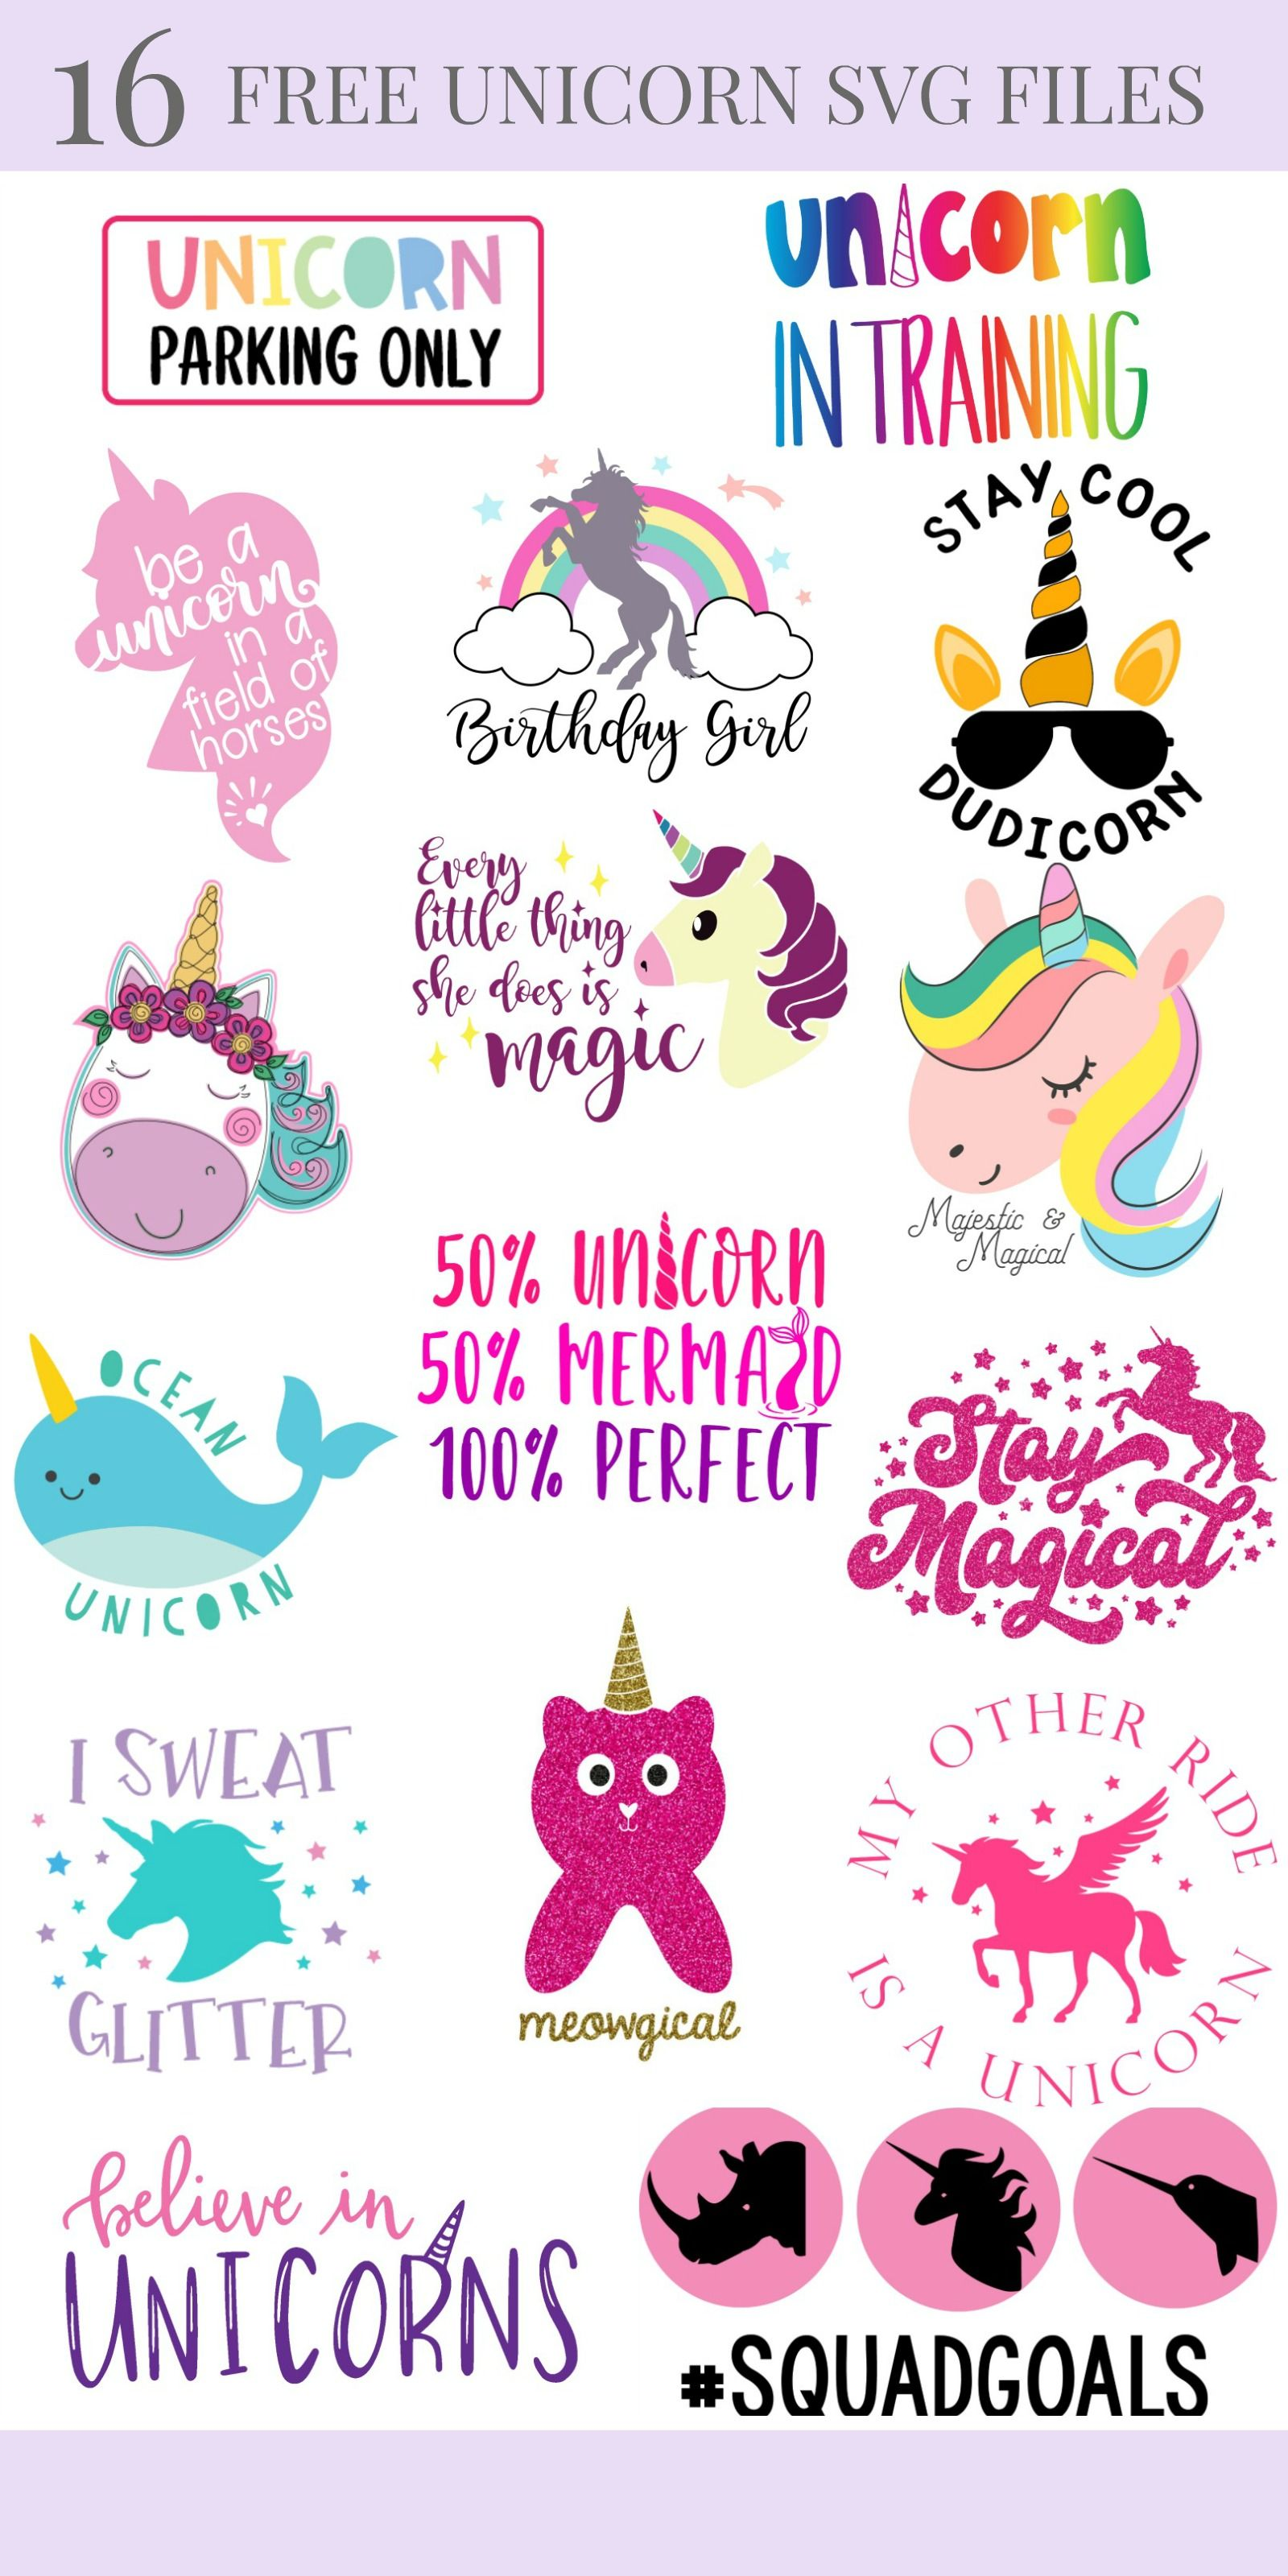 14 Free Unicorn SVG Files Including Meowgical Caticorn Cut File